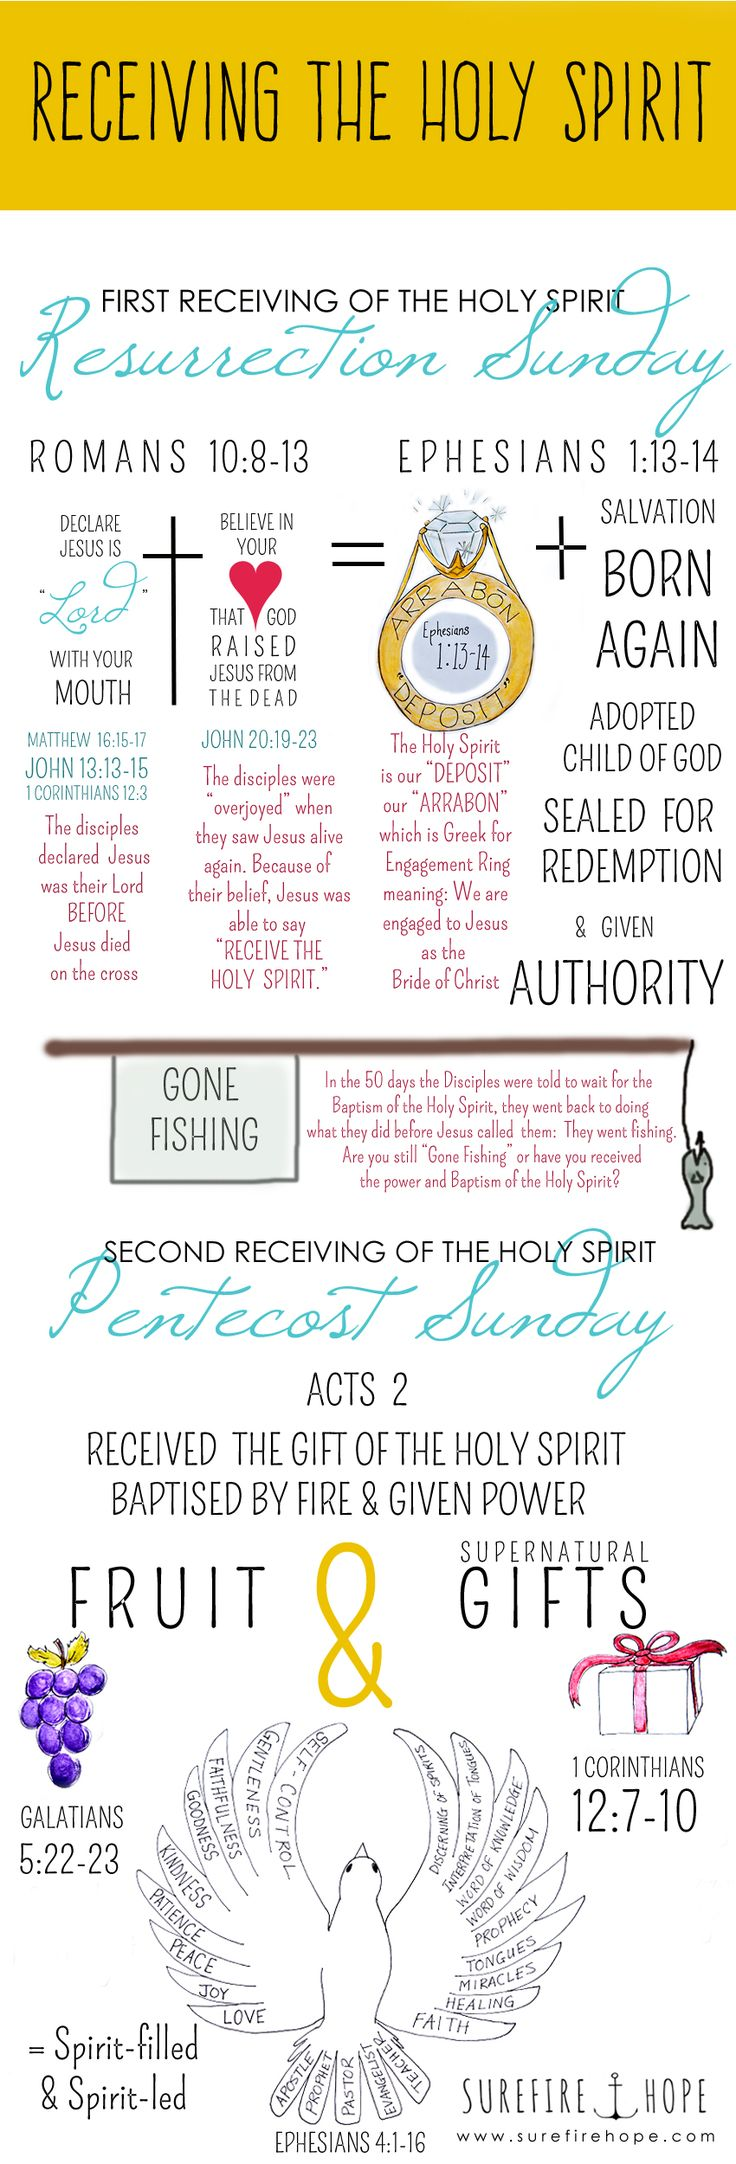 "Receiving the Holy Spirit - Surefire Hope - Bible Study Blog | www.surefirehope.com | Jesus told the disciples to ""Receive the Holy Spirit"" (John 20:19-23) but He also told them wait for the Baptism of the Holy Spirit (Luke 24:49, Acts 1:4-5). So what did they receive when Jesus blew on them Resurrection Sunday, and how is that receiving of the Holy Spirit different than what they were told to wait for? God's Word shows us that there are two distinct receivings of the Holy Spirit, each for…"